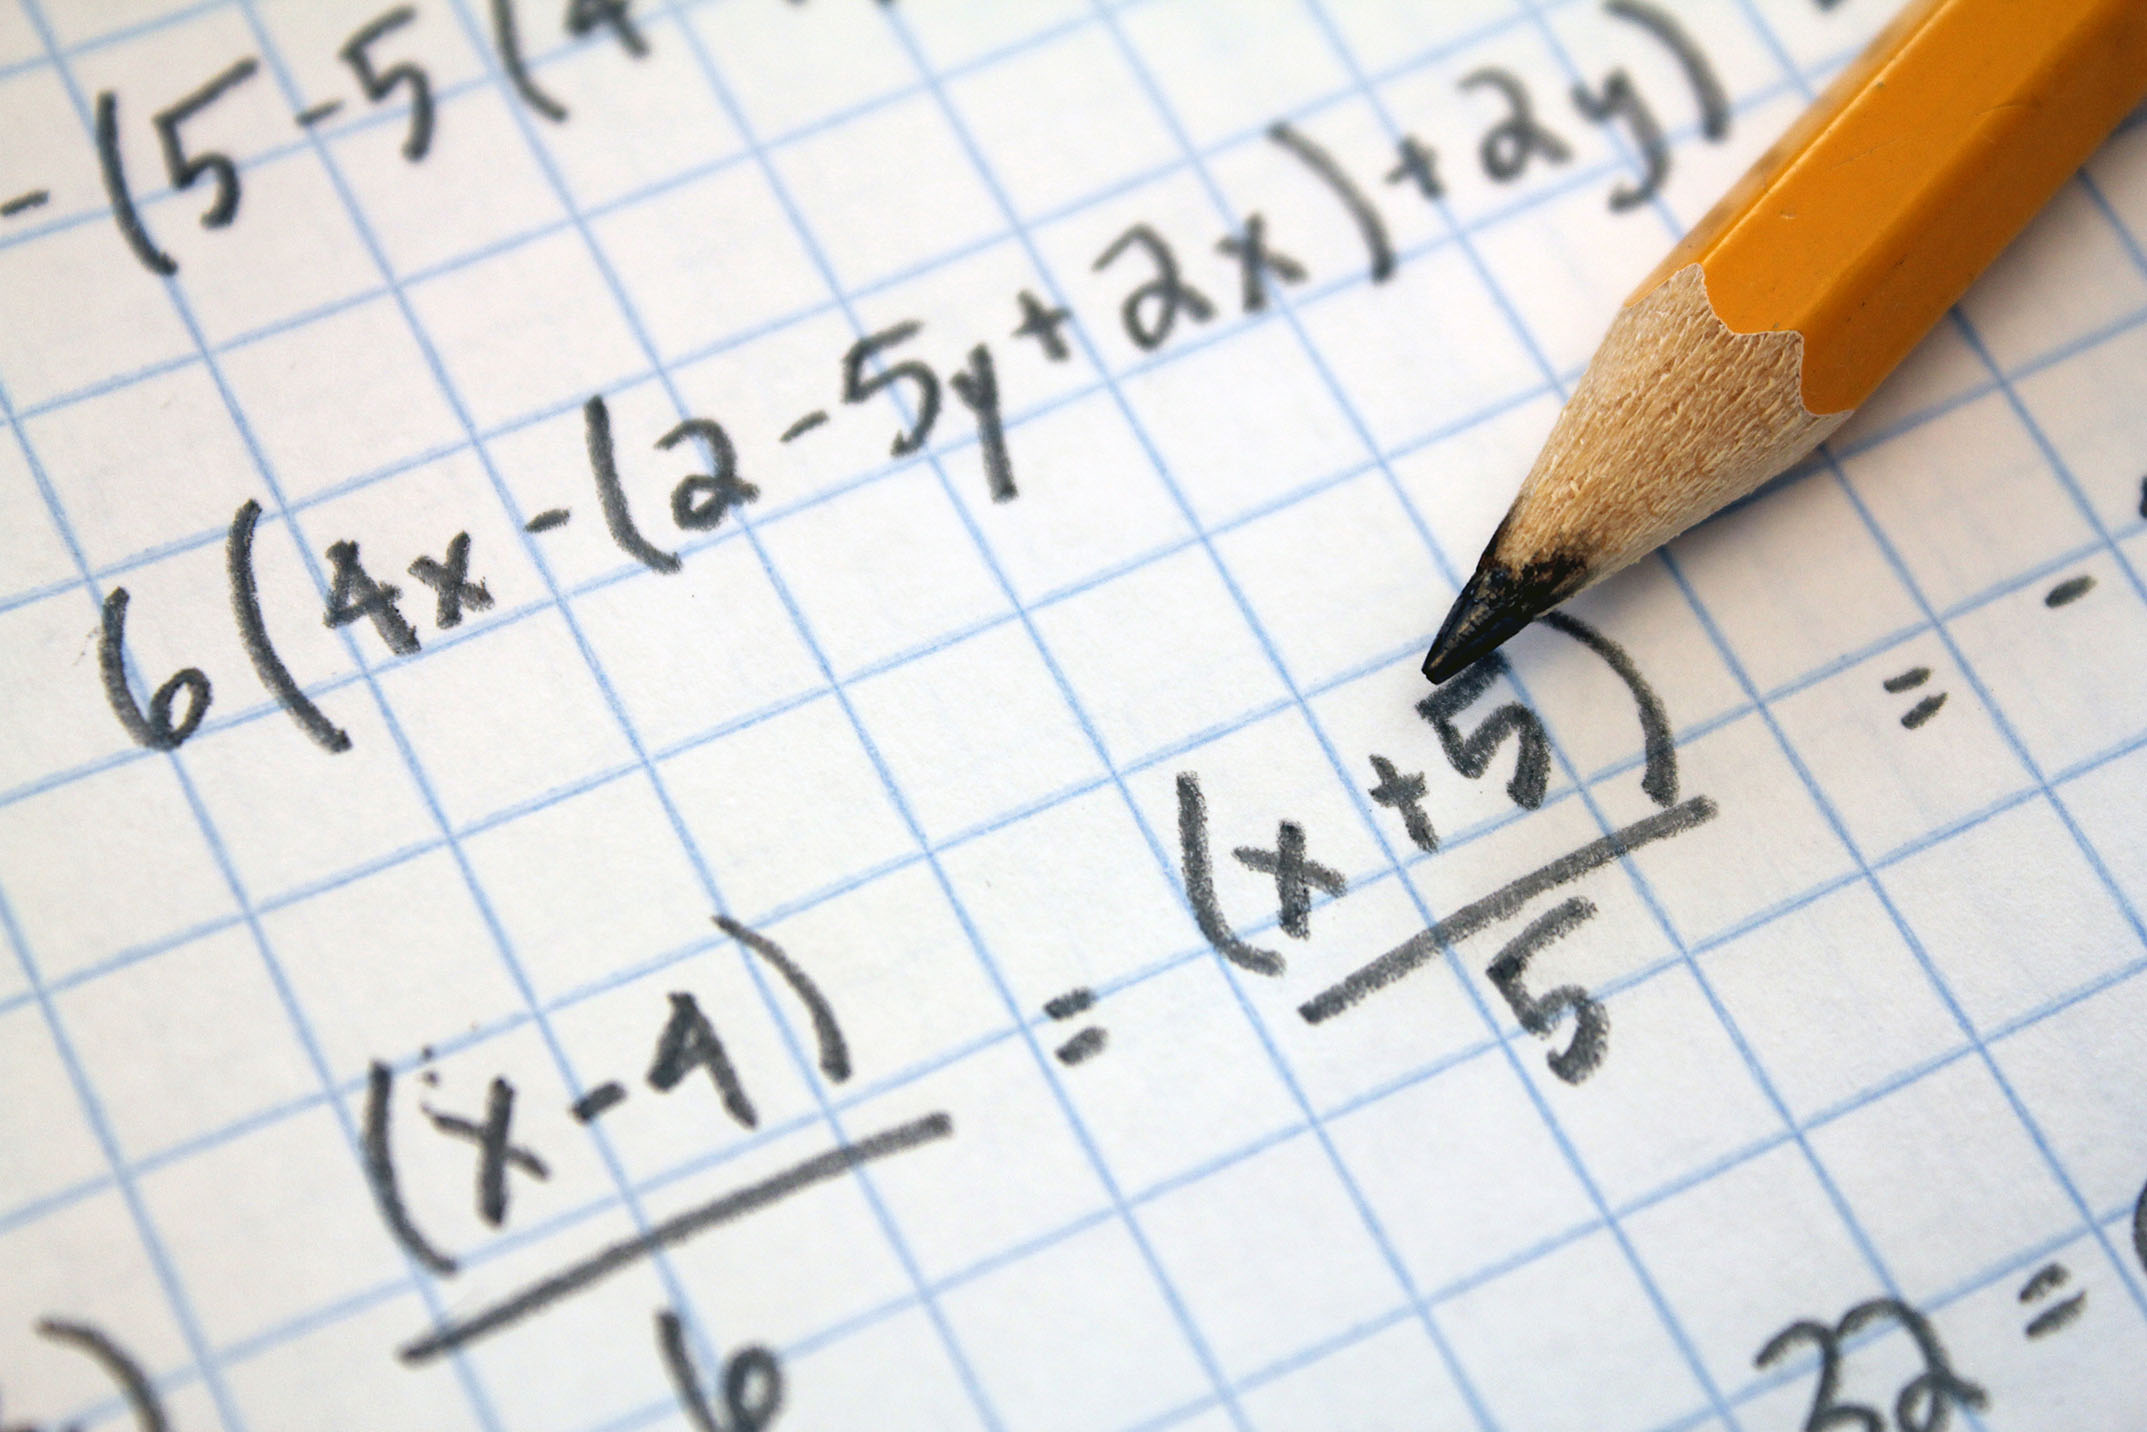 Algebra is now a 'Civil Rights issue'?